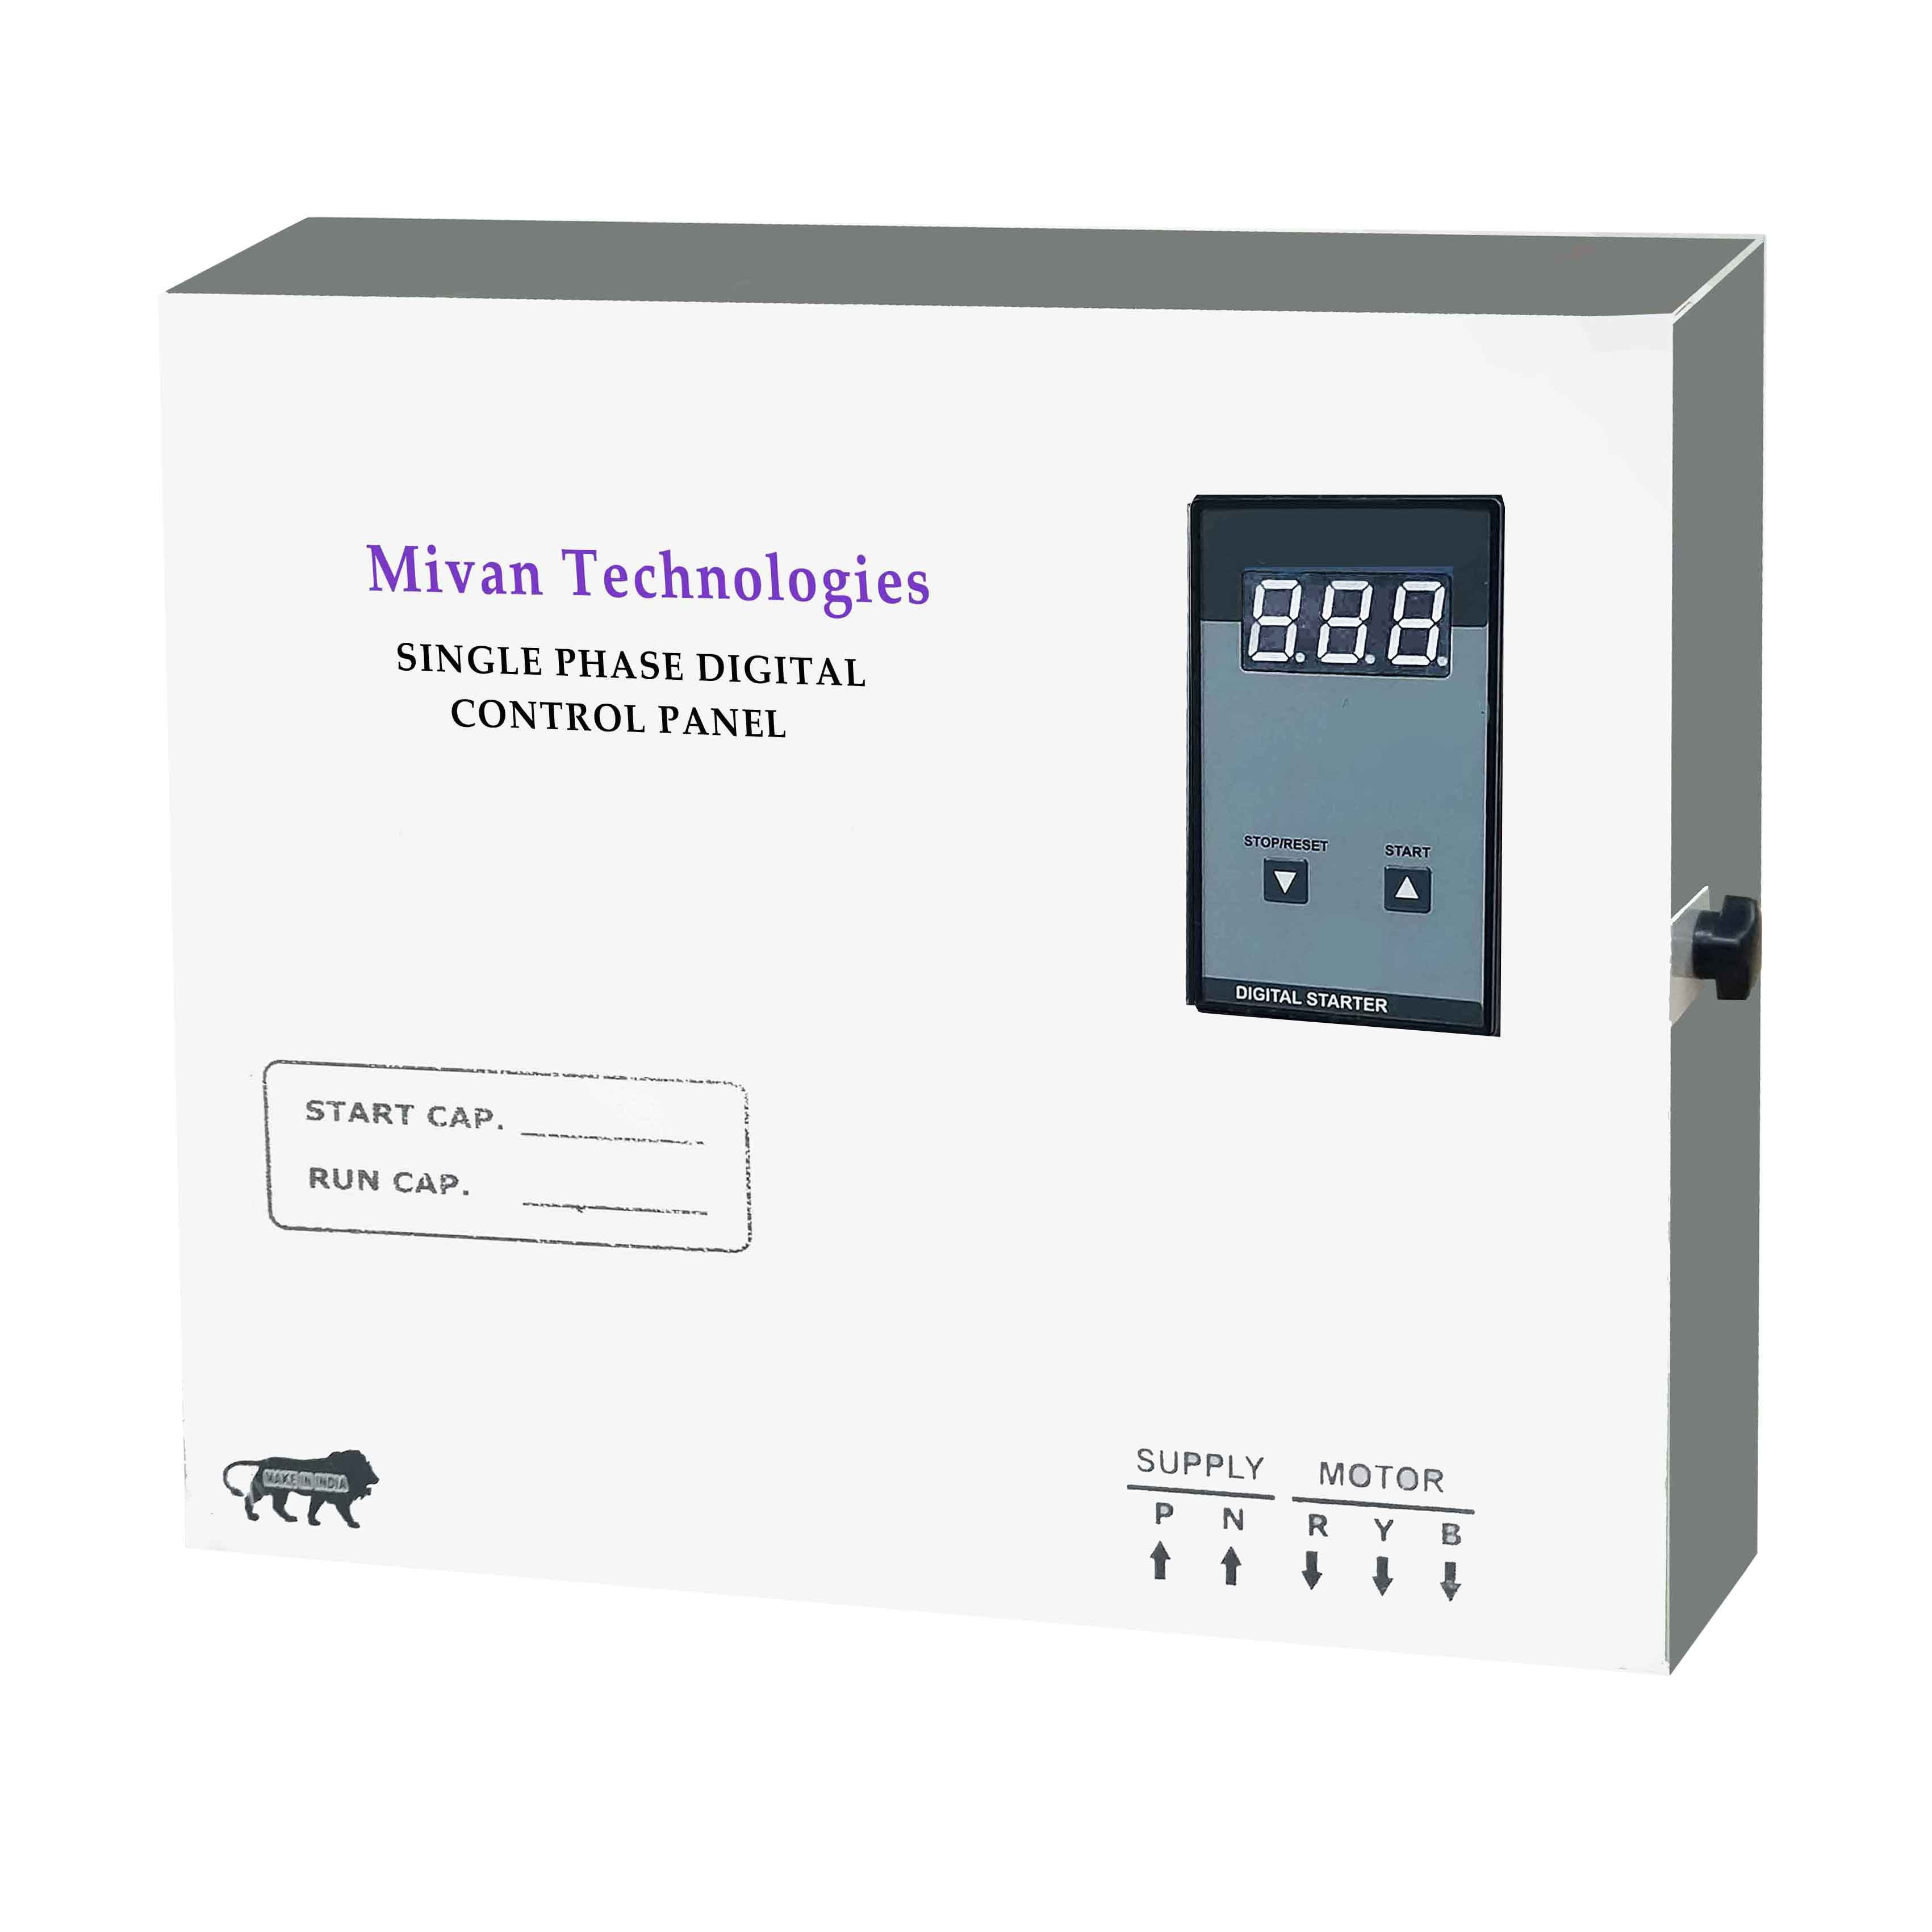 DVA SR for 3 HP motor Digital starter panel with volt and amp miter with start and run capacitor